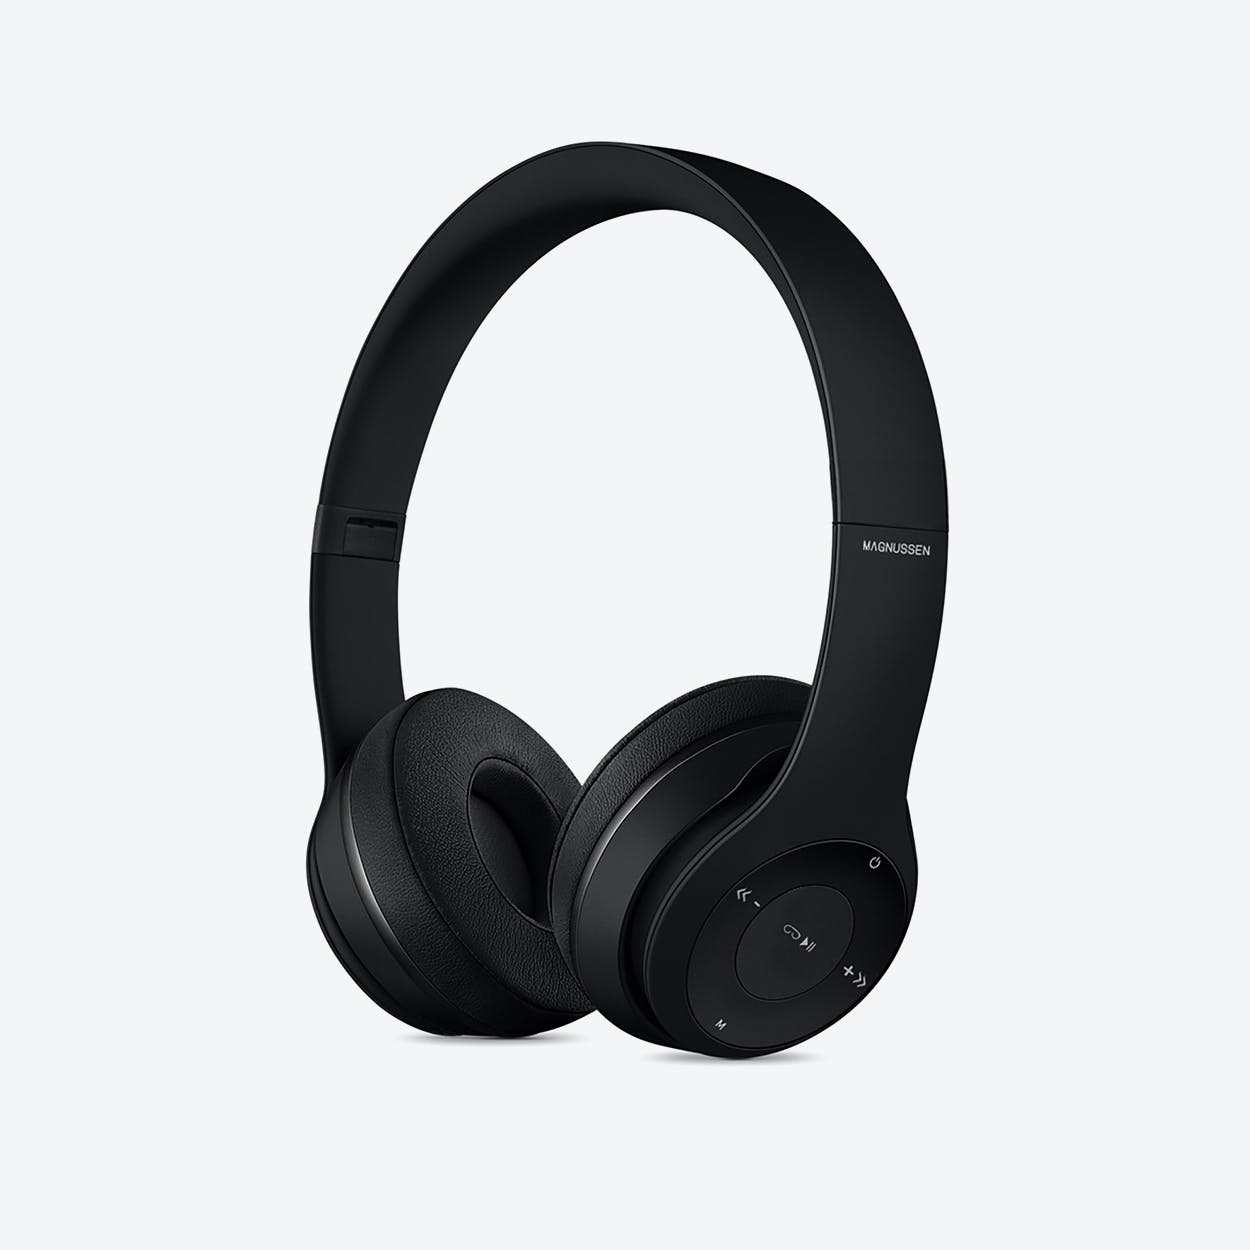 MAGNUSSEN H2 Headphones in Black